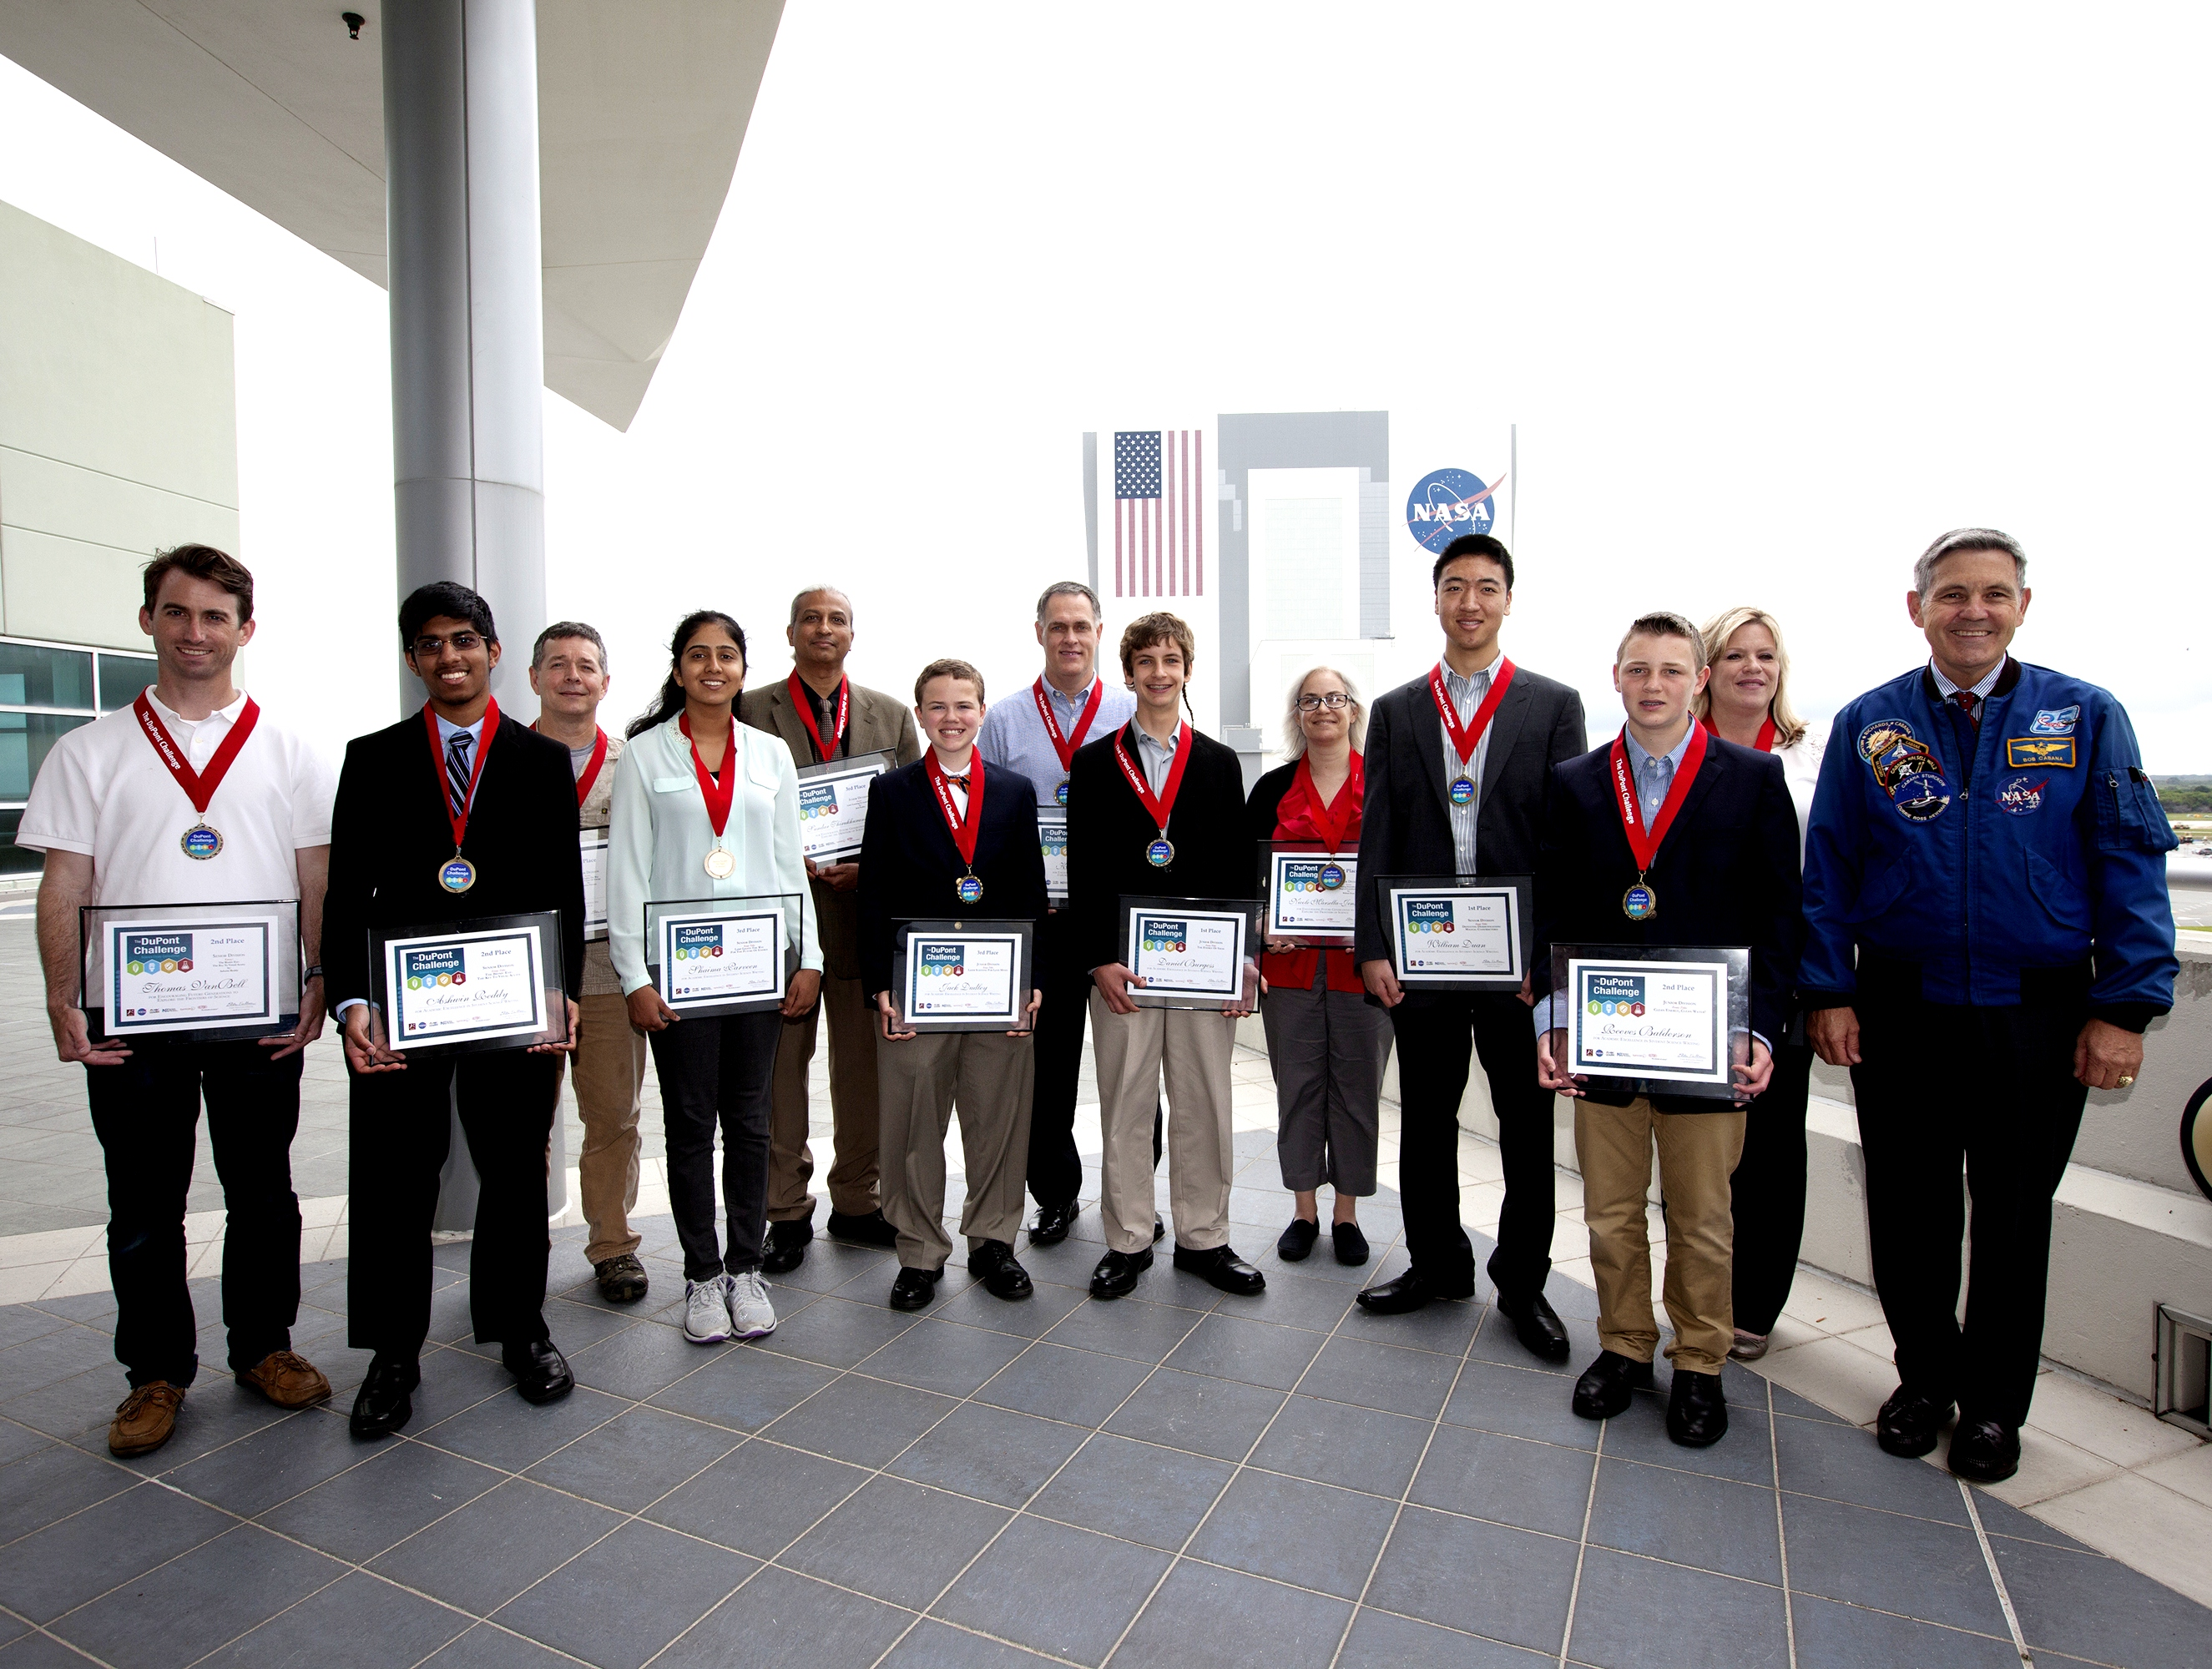 kennedy honors dupont essay challenge winners nasa